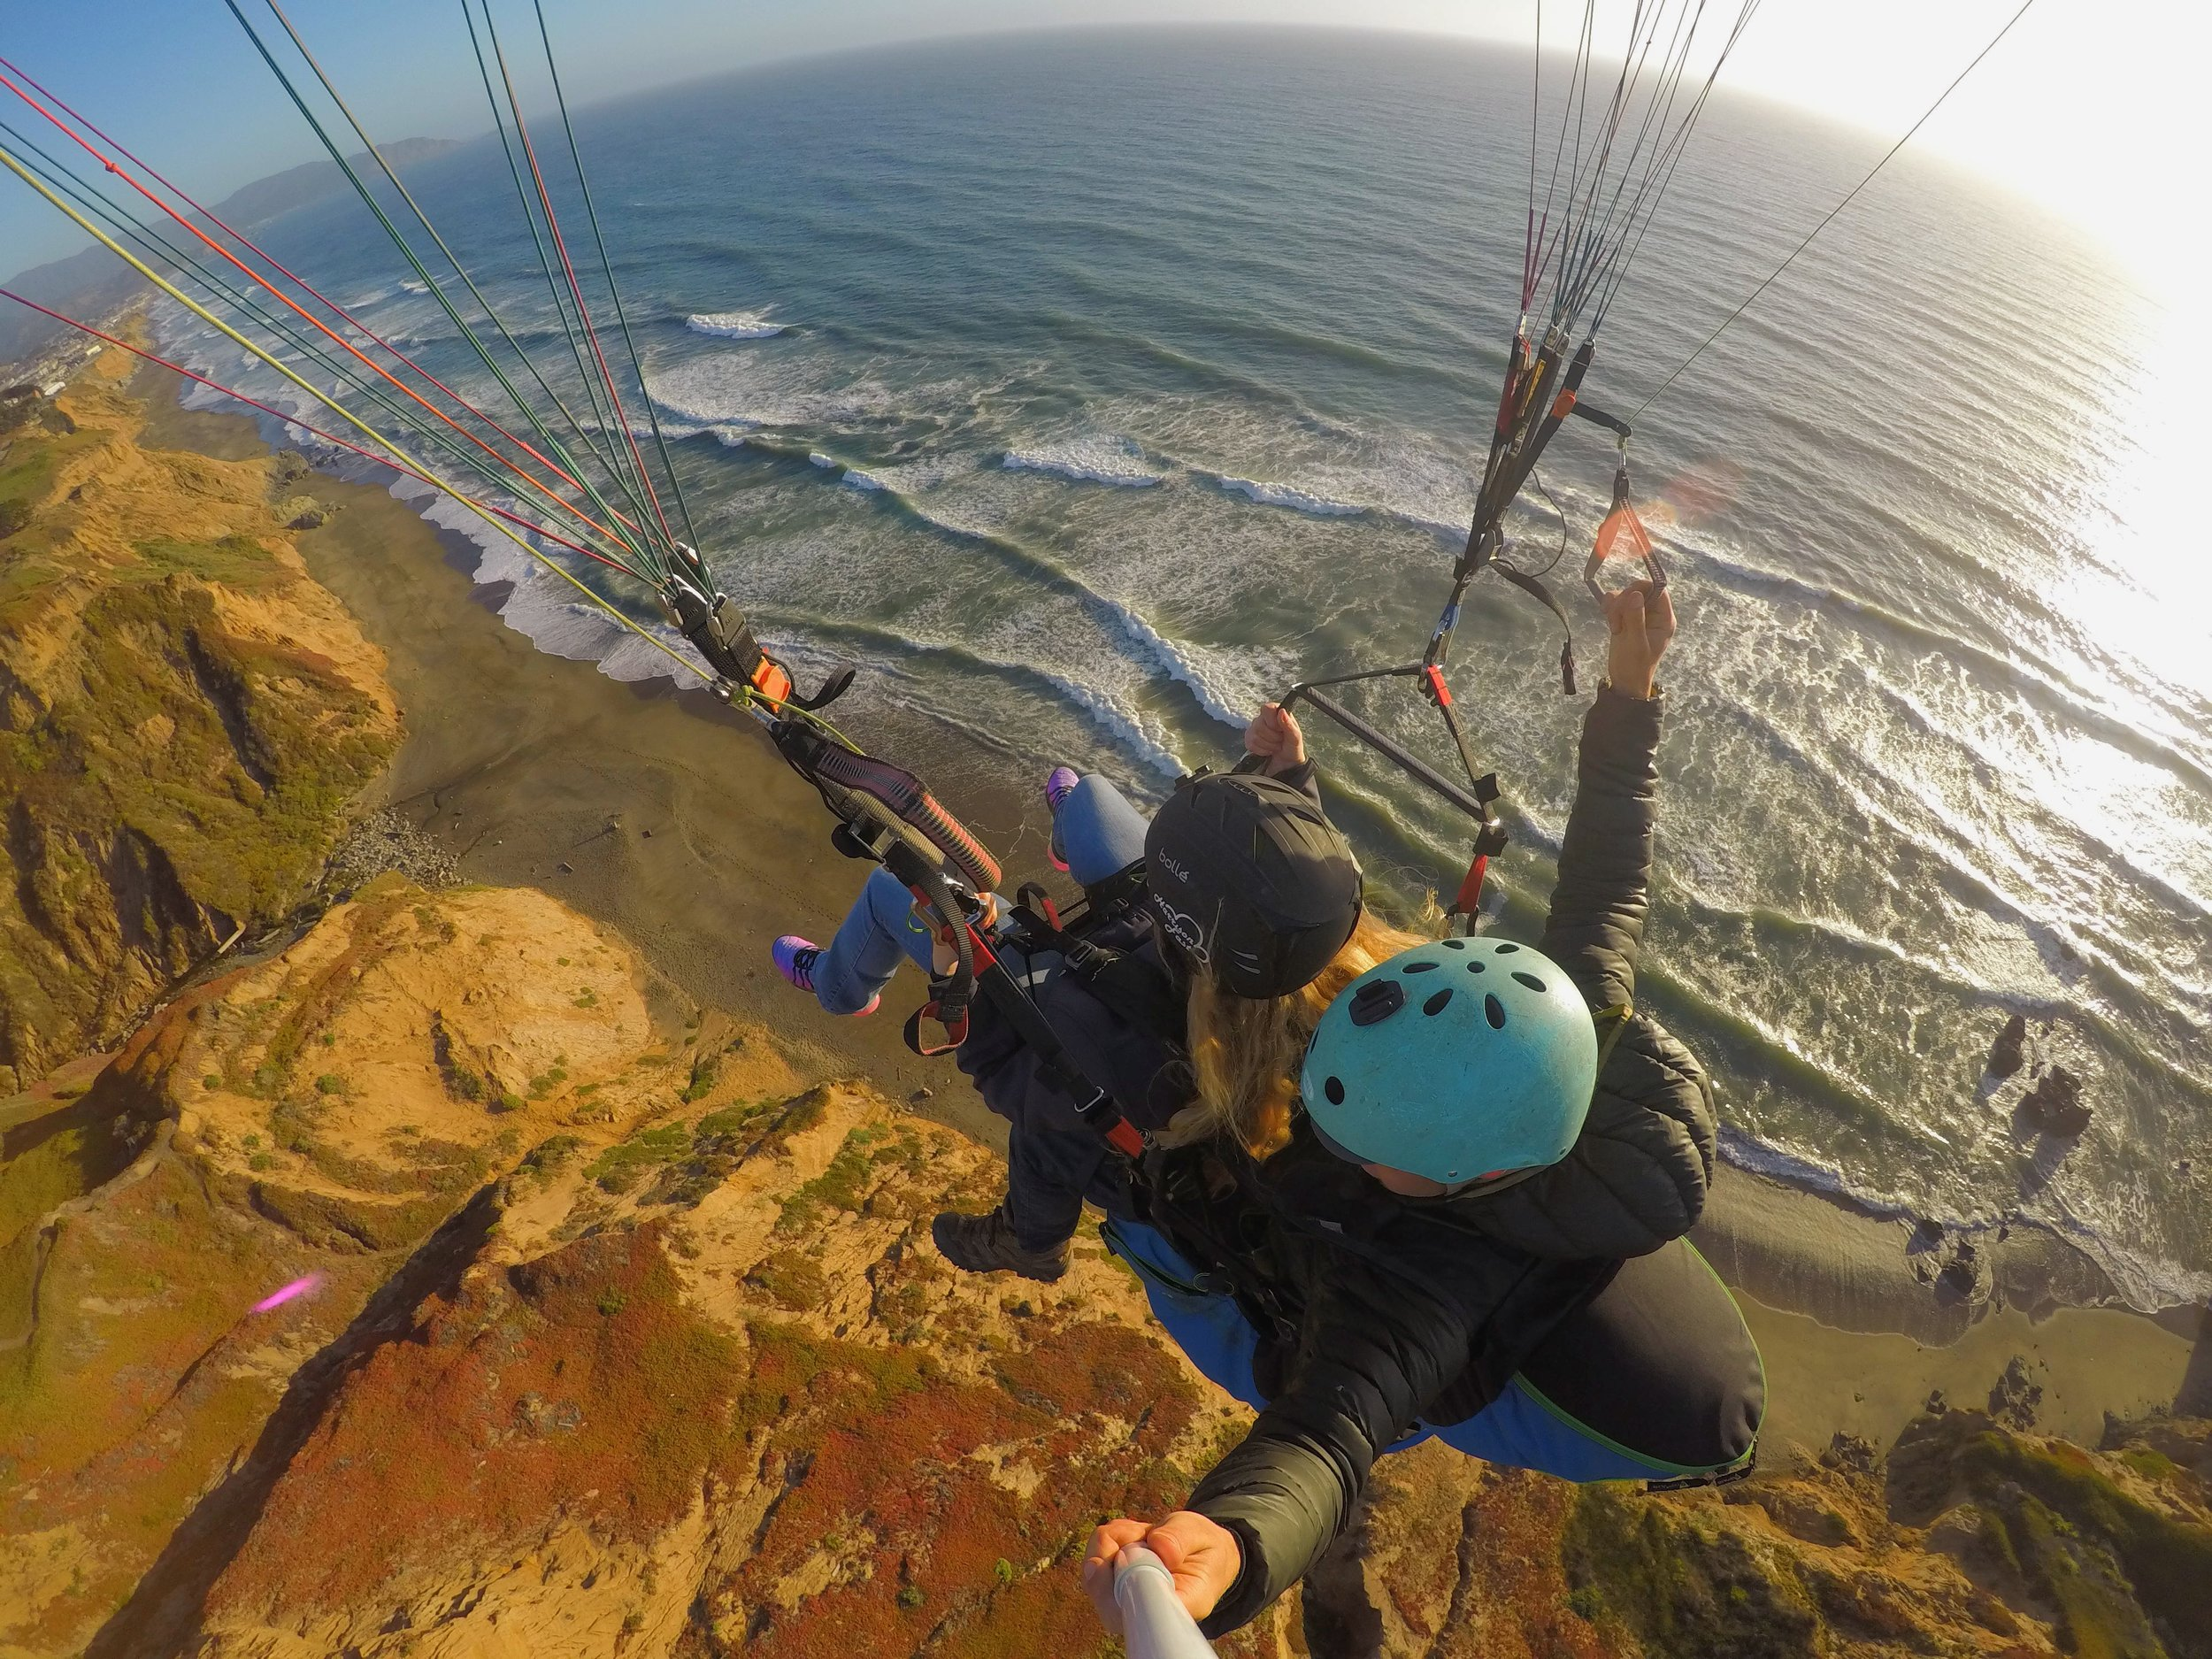 - Paragliding down the coast in San Francisco